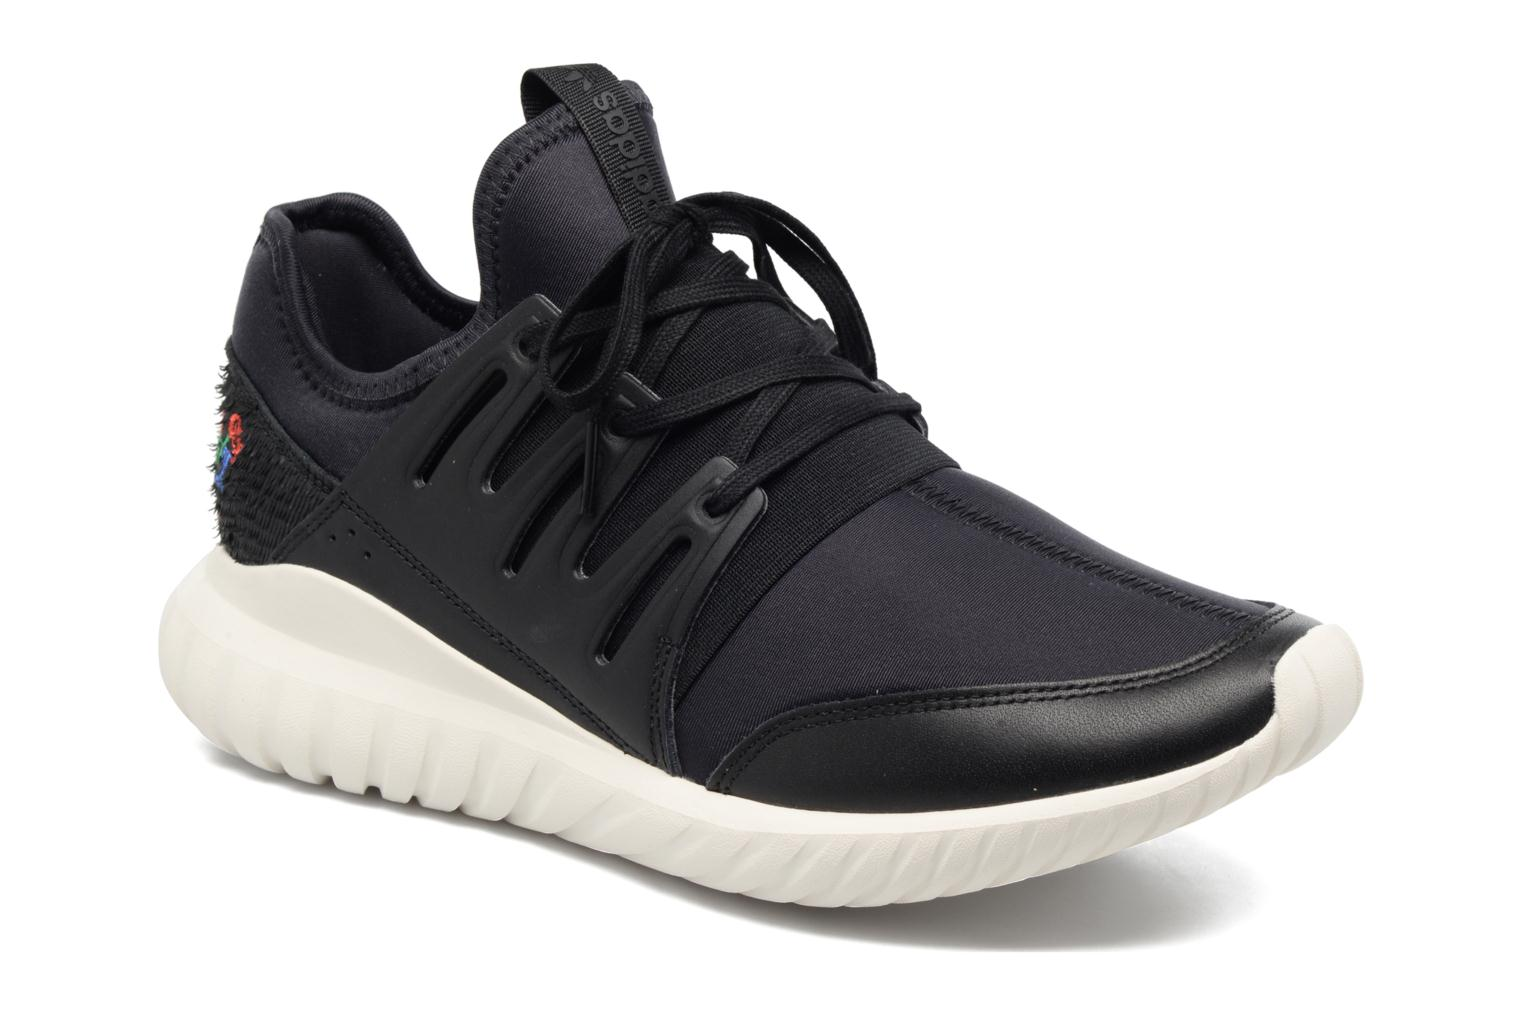 Baskets Adidas Originals Tubular Radial Cny Noir vue détail/paire